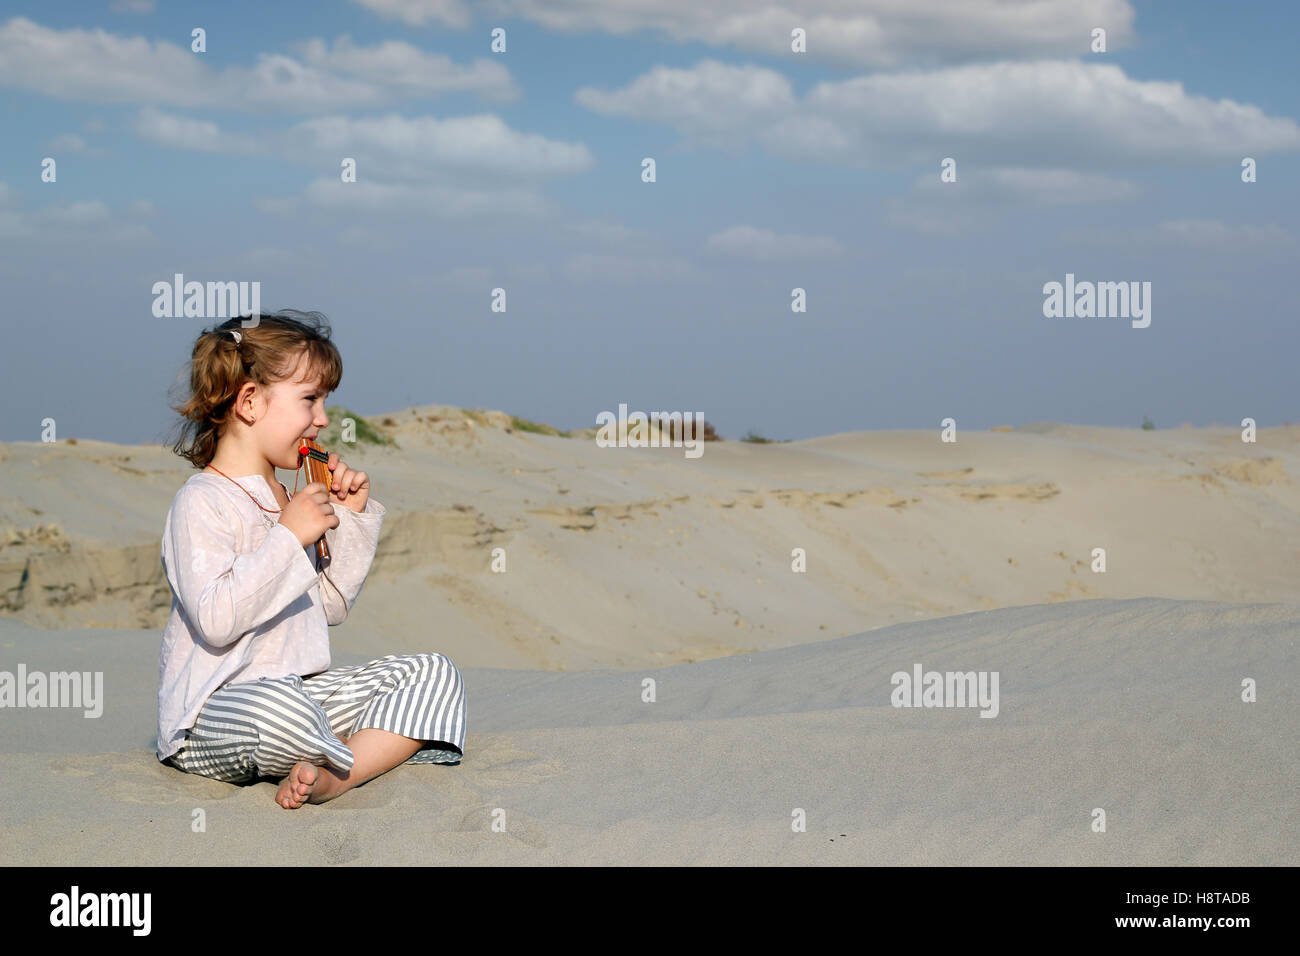 little girl sitting on sand and play music - Stock Image